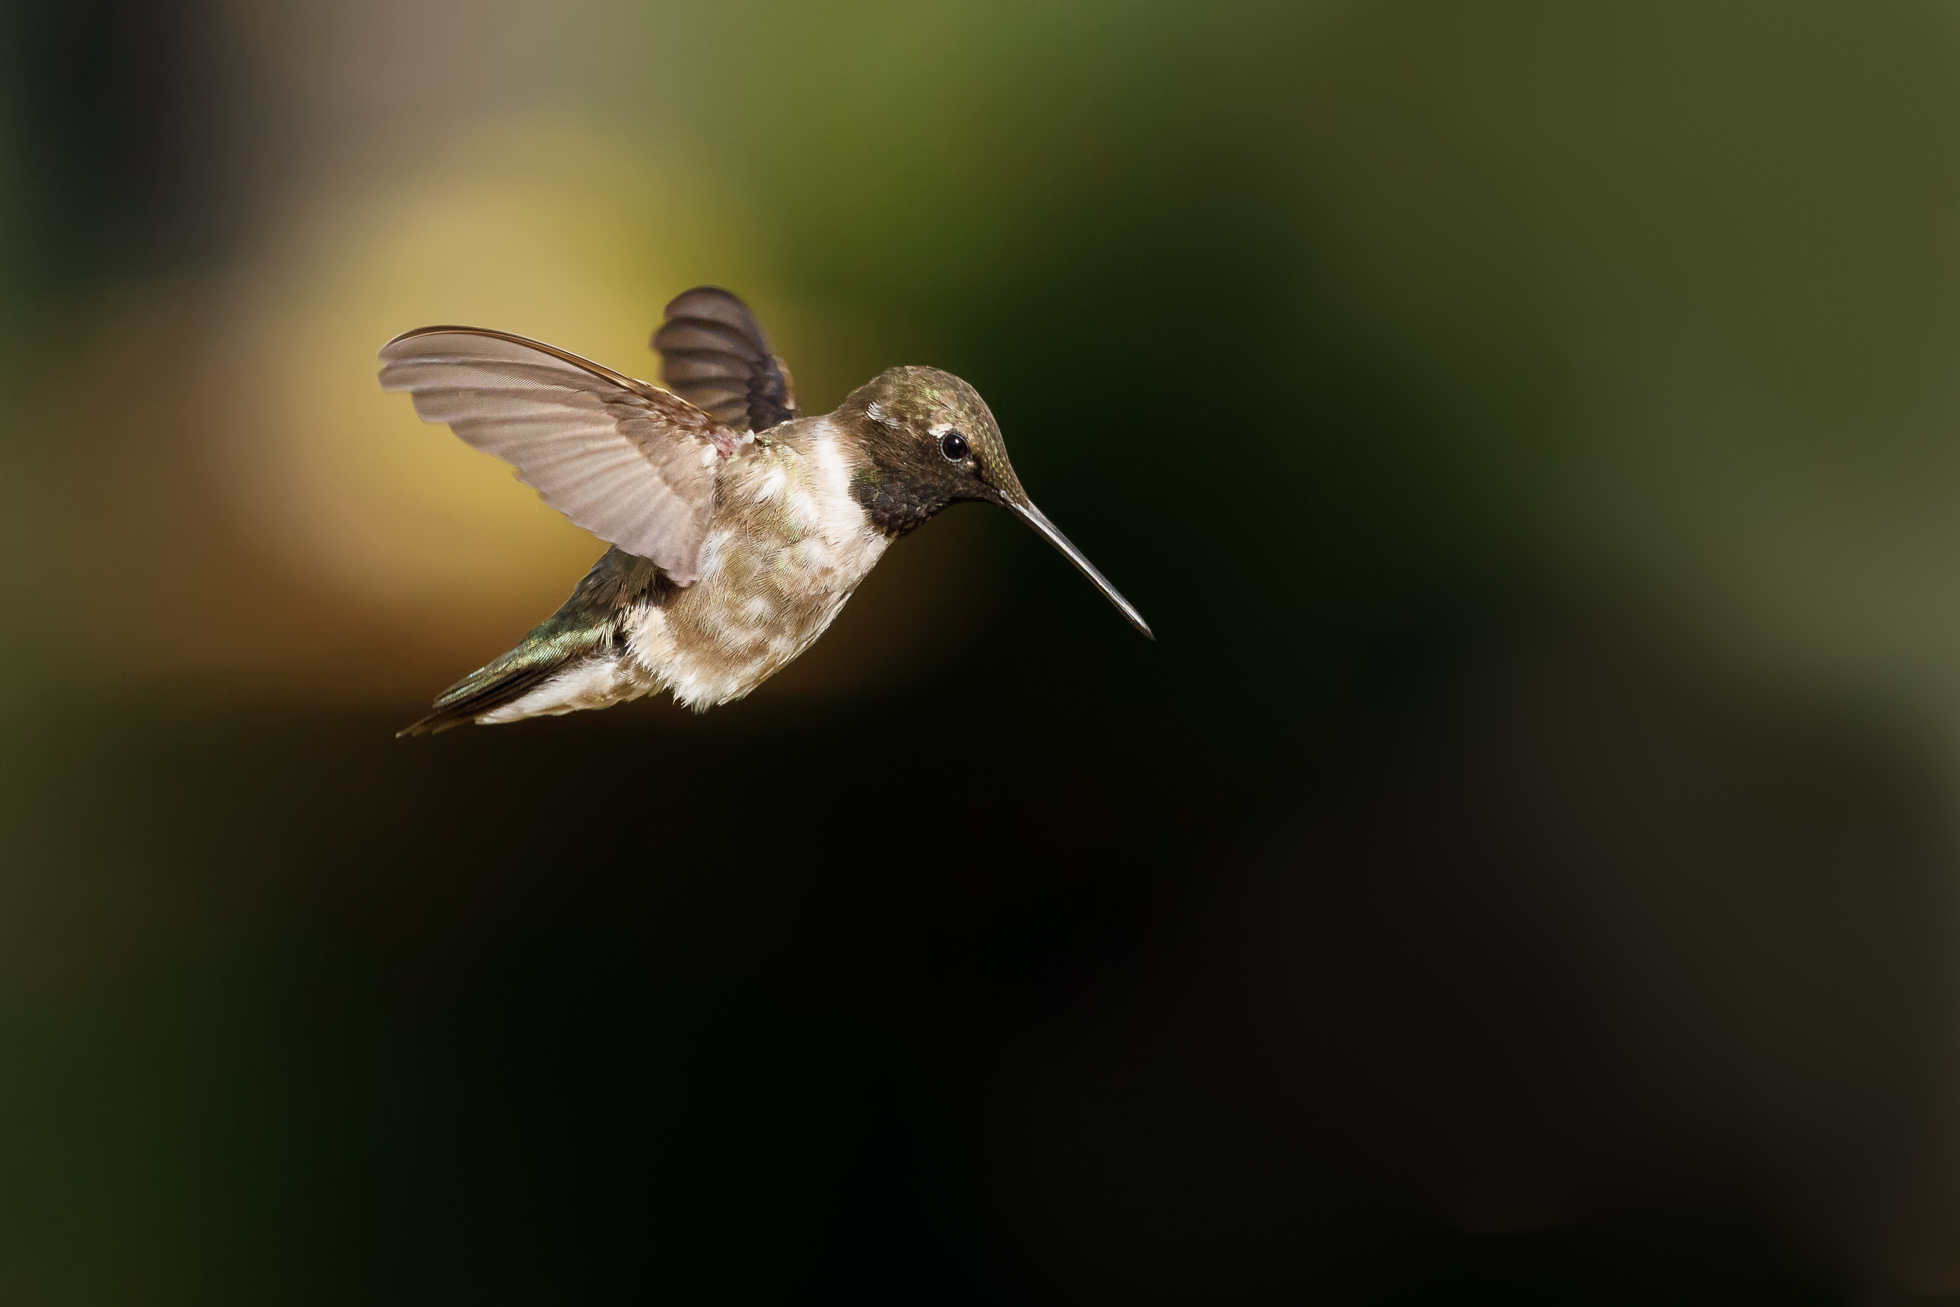 Hovering-©Nadeen-Flynn-Photography-4c06323e